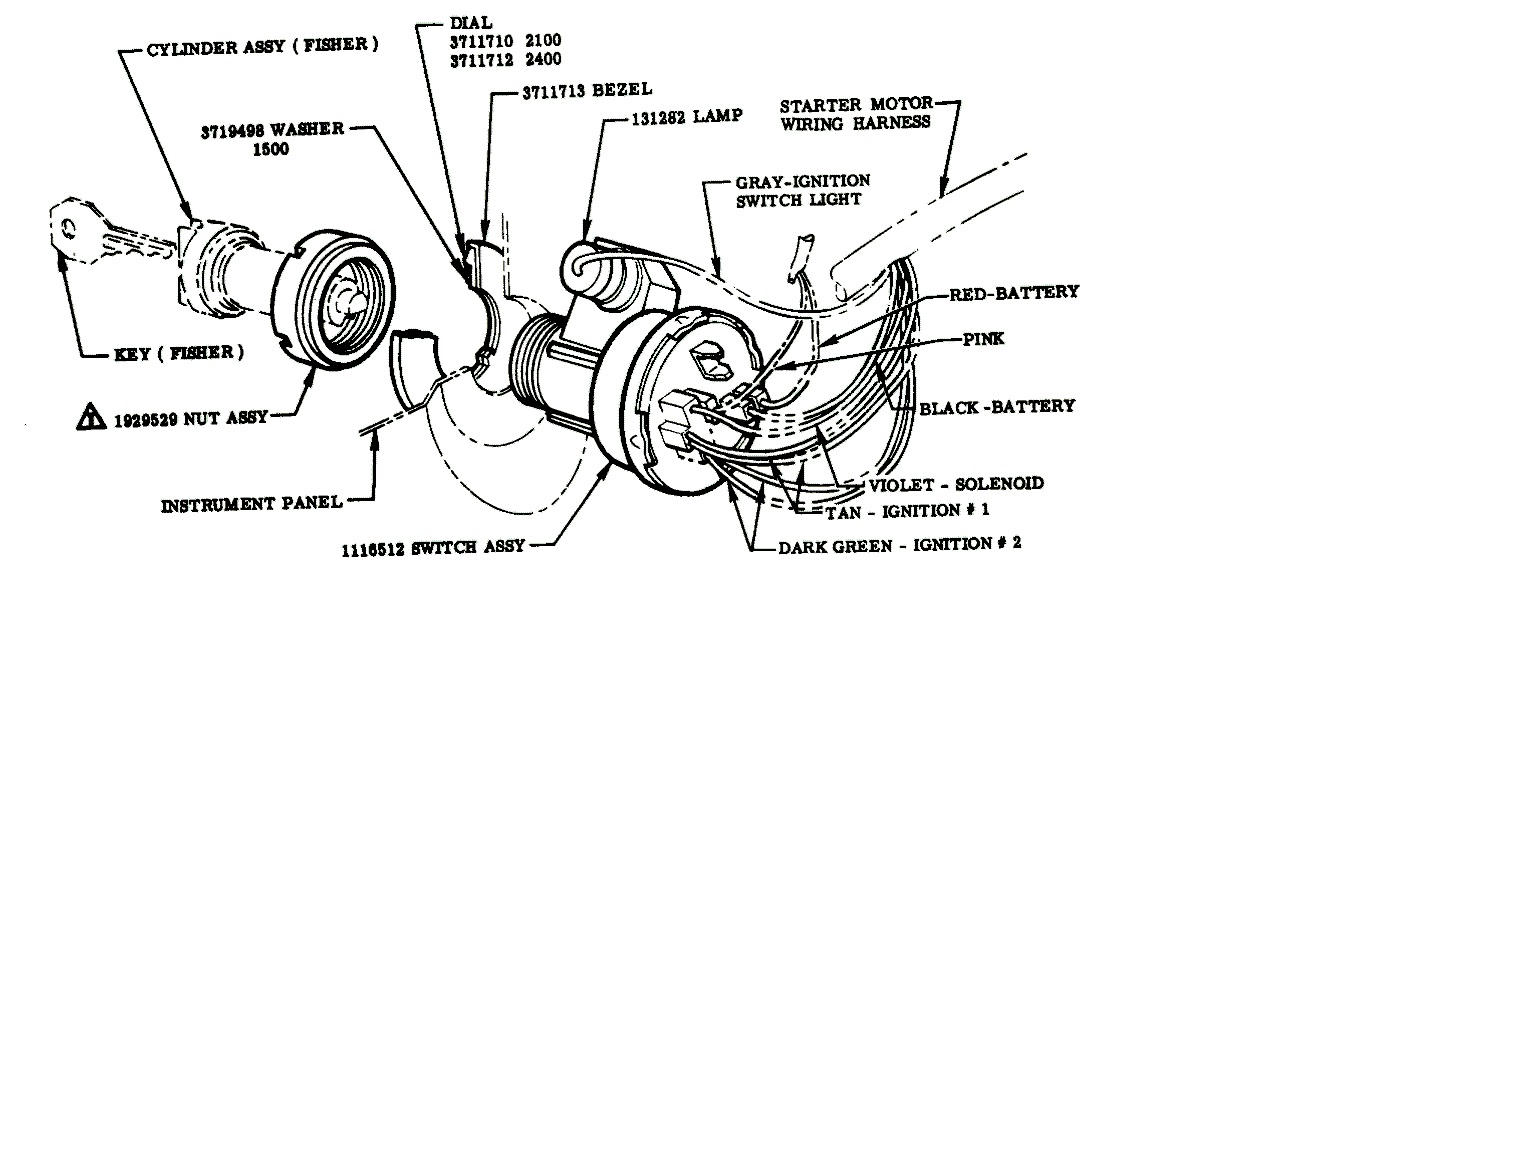 Gm Headlight Switch Wiring Diagram 1953 Opinions About Msd Window 56 Chev Dimmer Trusted Rh Dafpods Co 1956 Chevy Basic